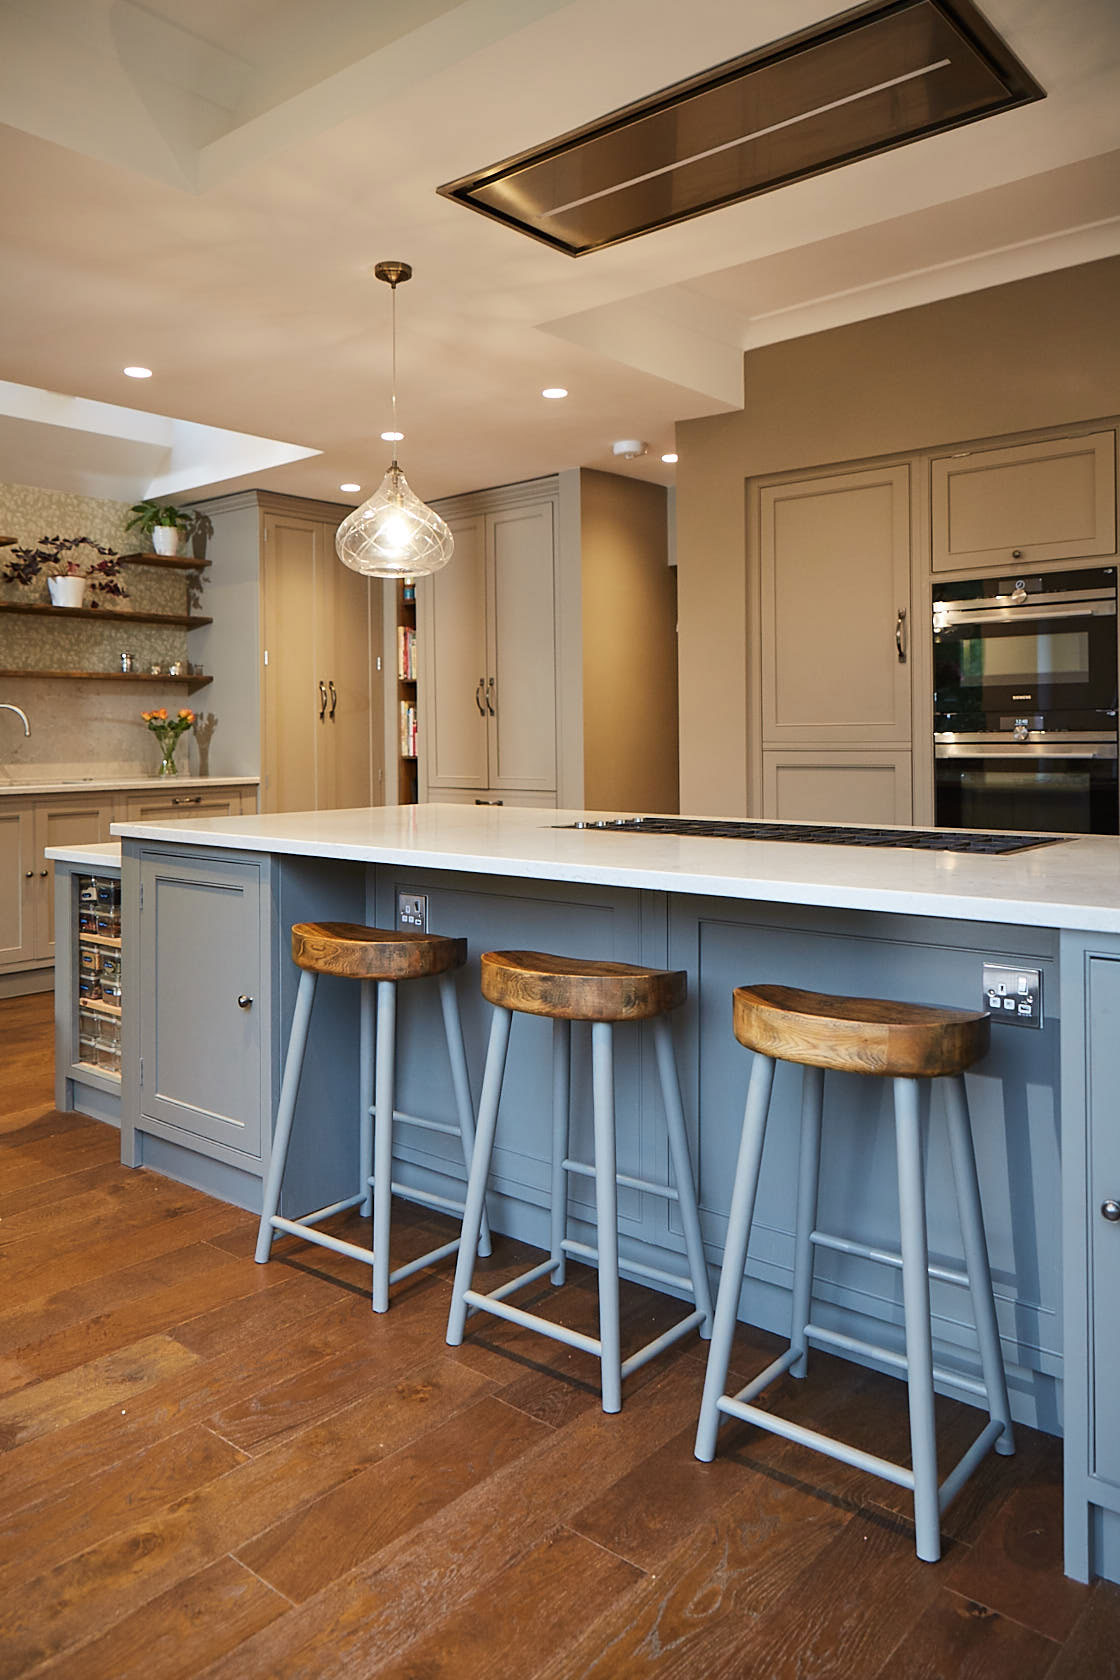 Painted breakfast bar stools with oak seat